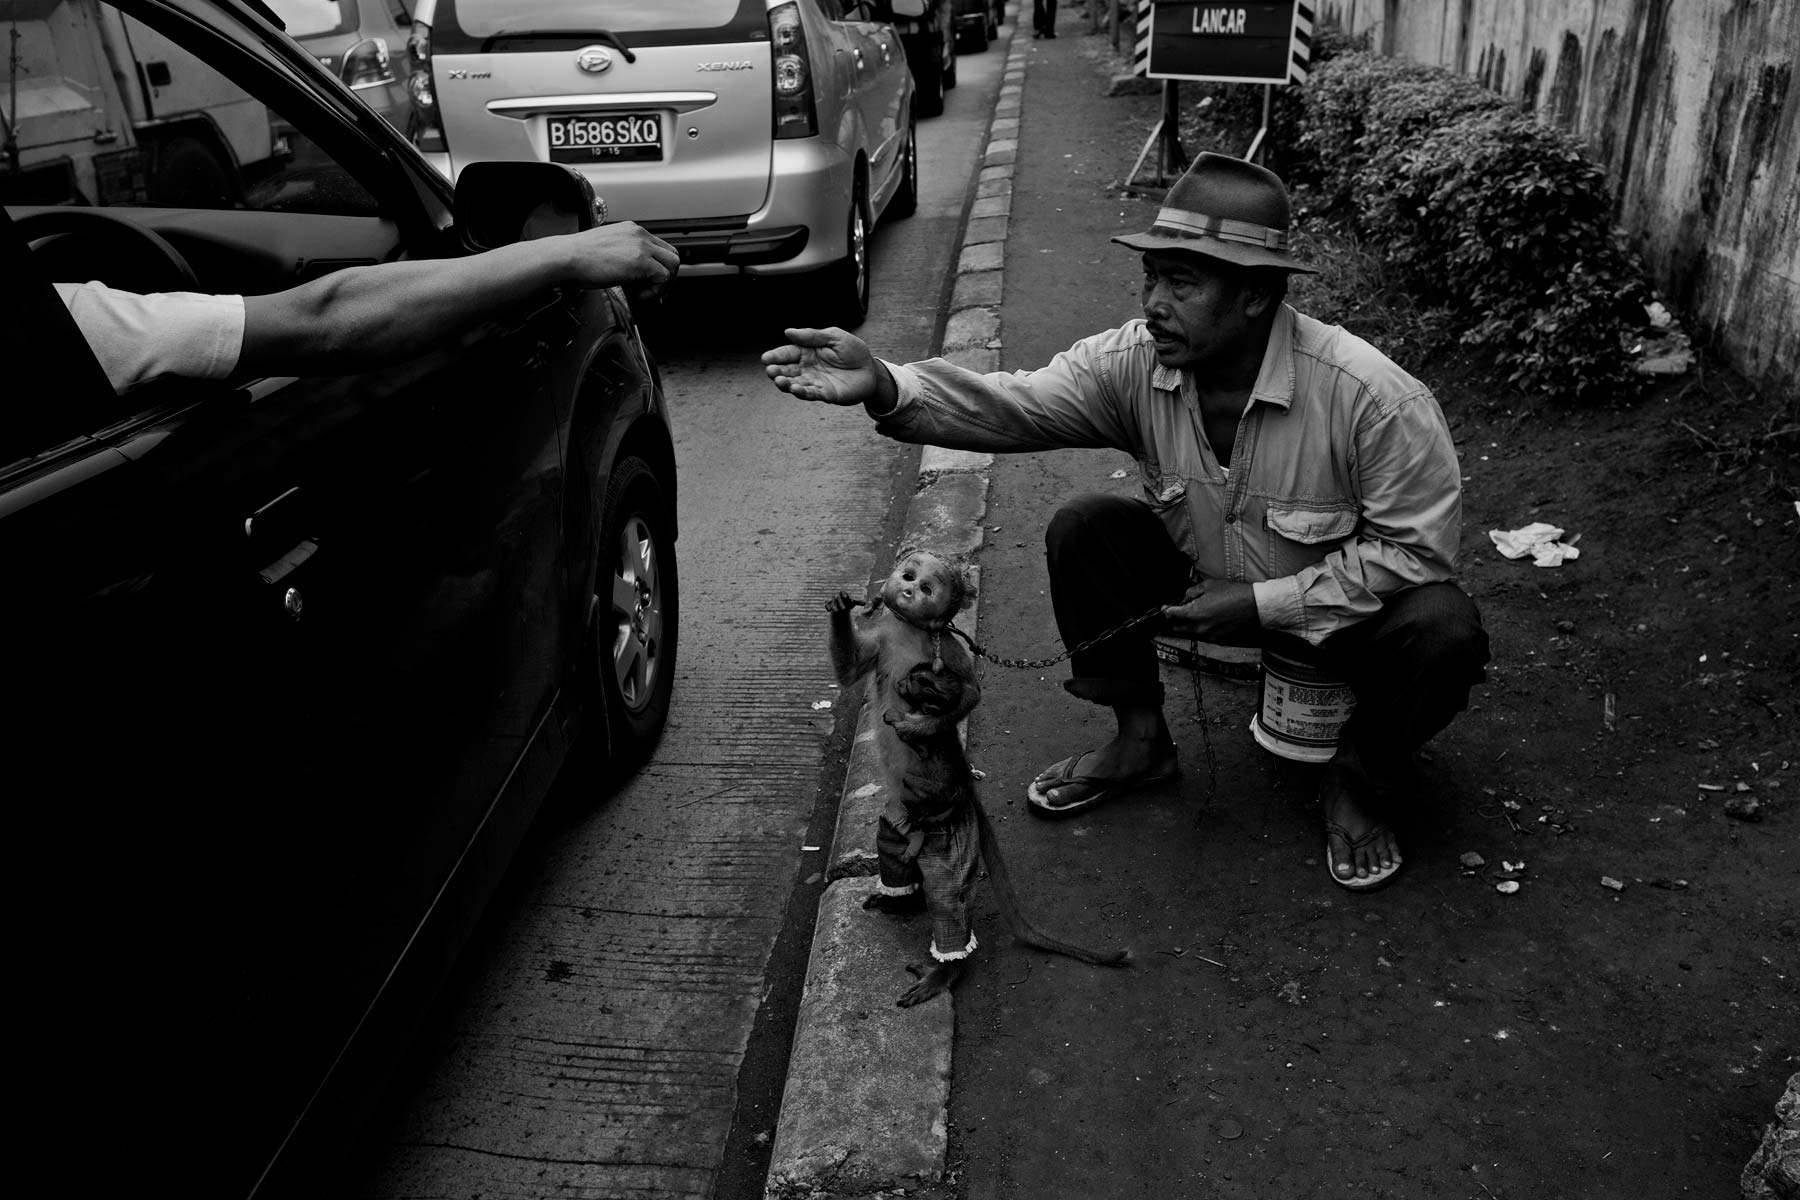 Monkey handler begs with performing monkey Jakarta, Indonesia